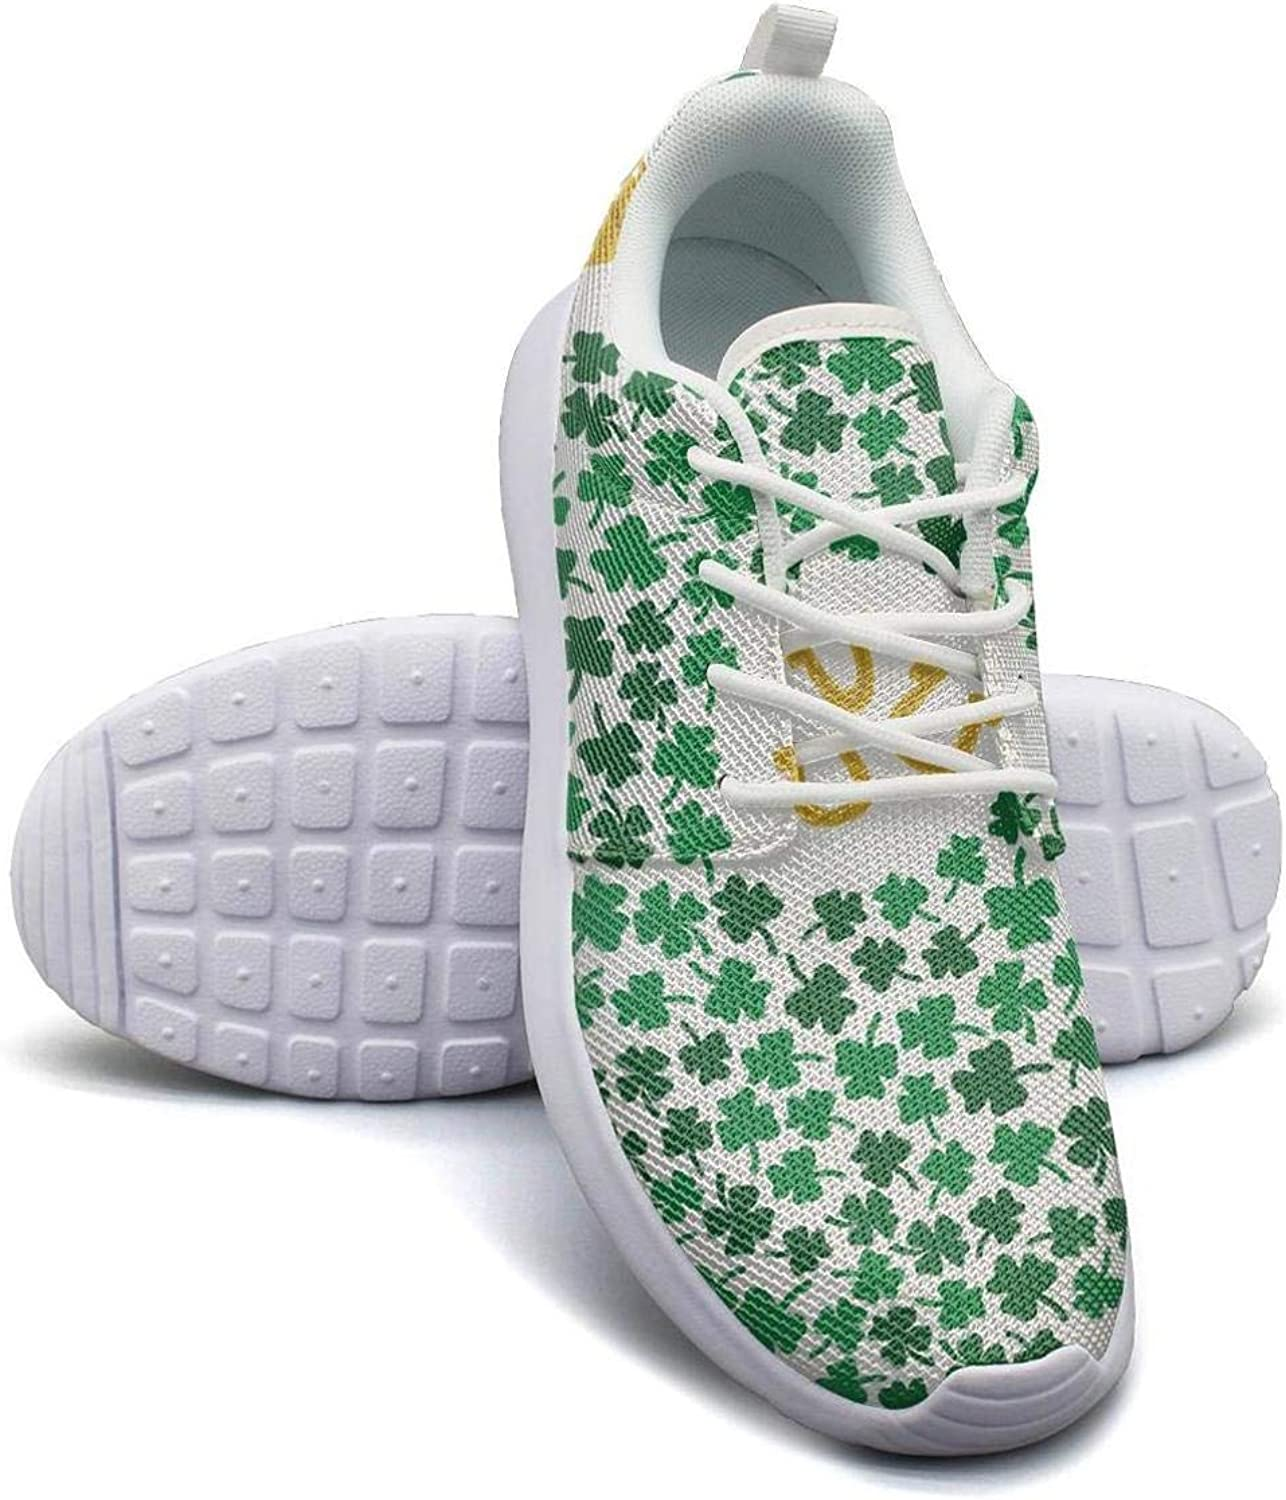 Gjsonmv St. Patrick's Day mesh Lightweight shoes for Women Casual Sports Driving Sneakers shoes